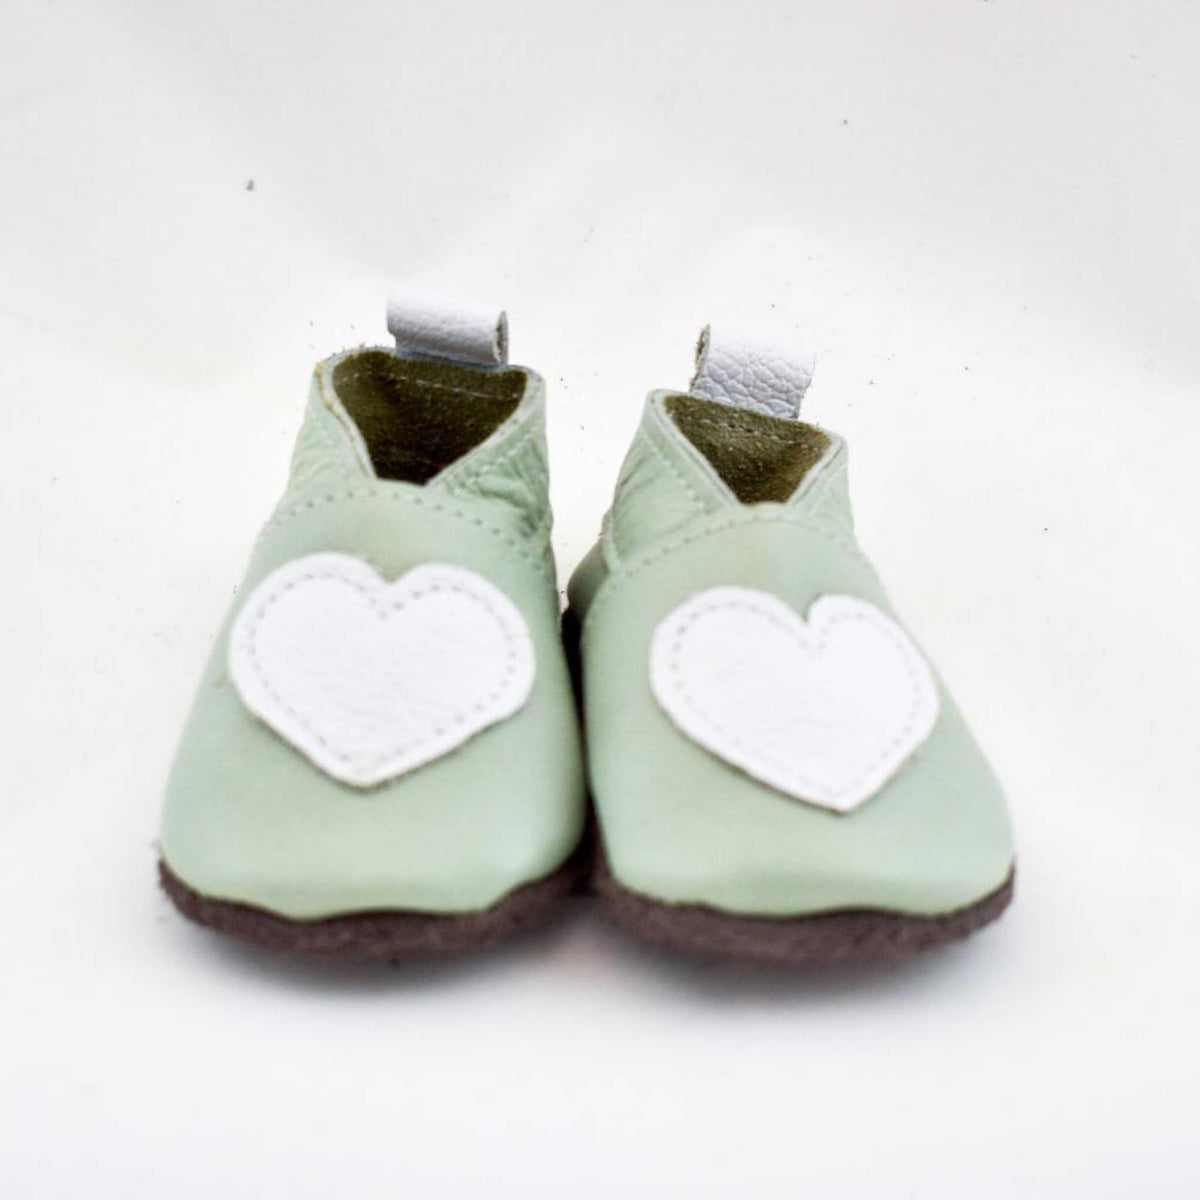 Soft soled leather shoes - Extra Large (18 - 24 months).